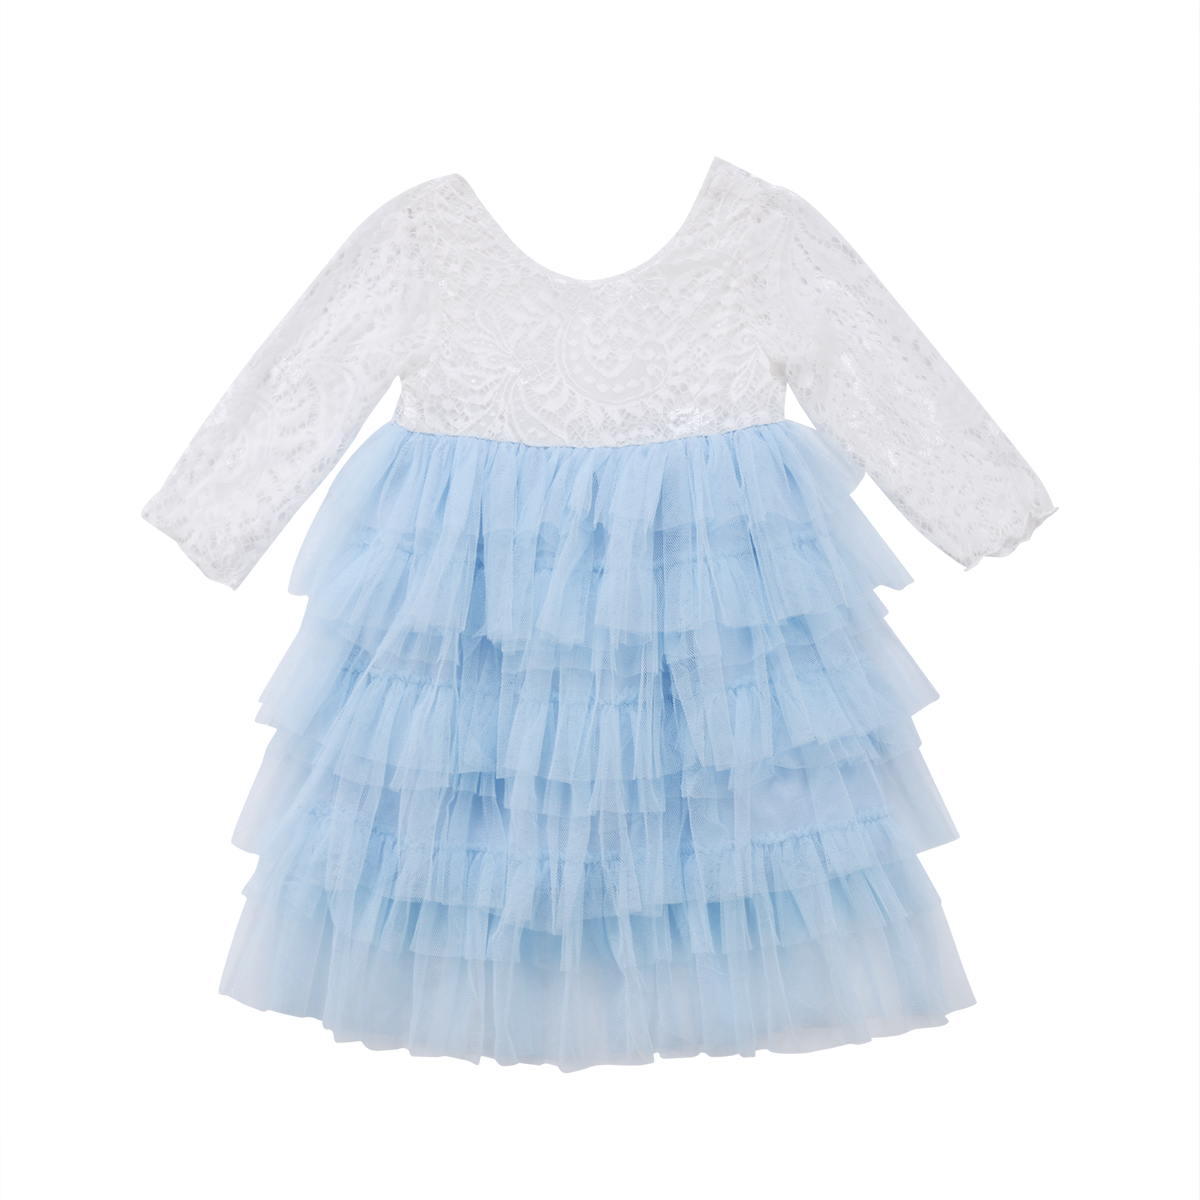 Toddler Kid Baby Girls Clothing Ruffles Cute Lace Dress Long Sleeve Party Tiered Prom Tutu Bridesmaid Party Pageant Dresses Girl